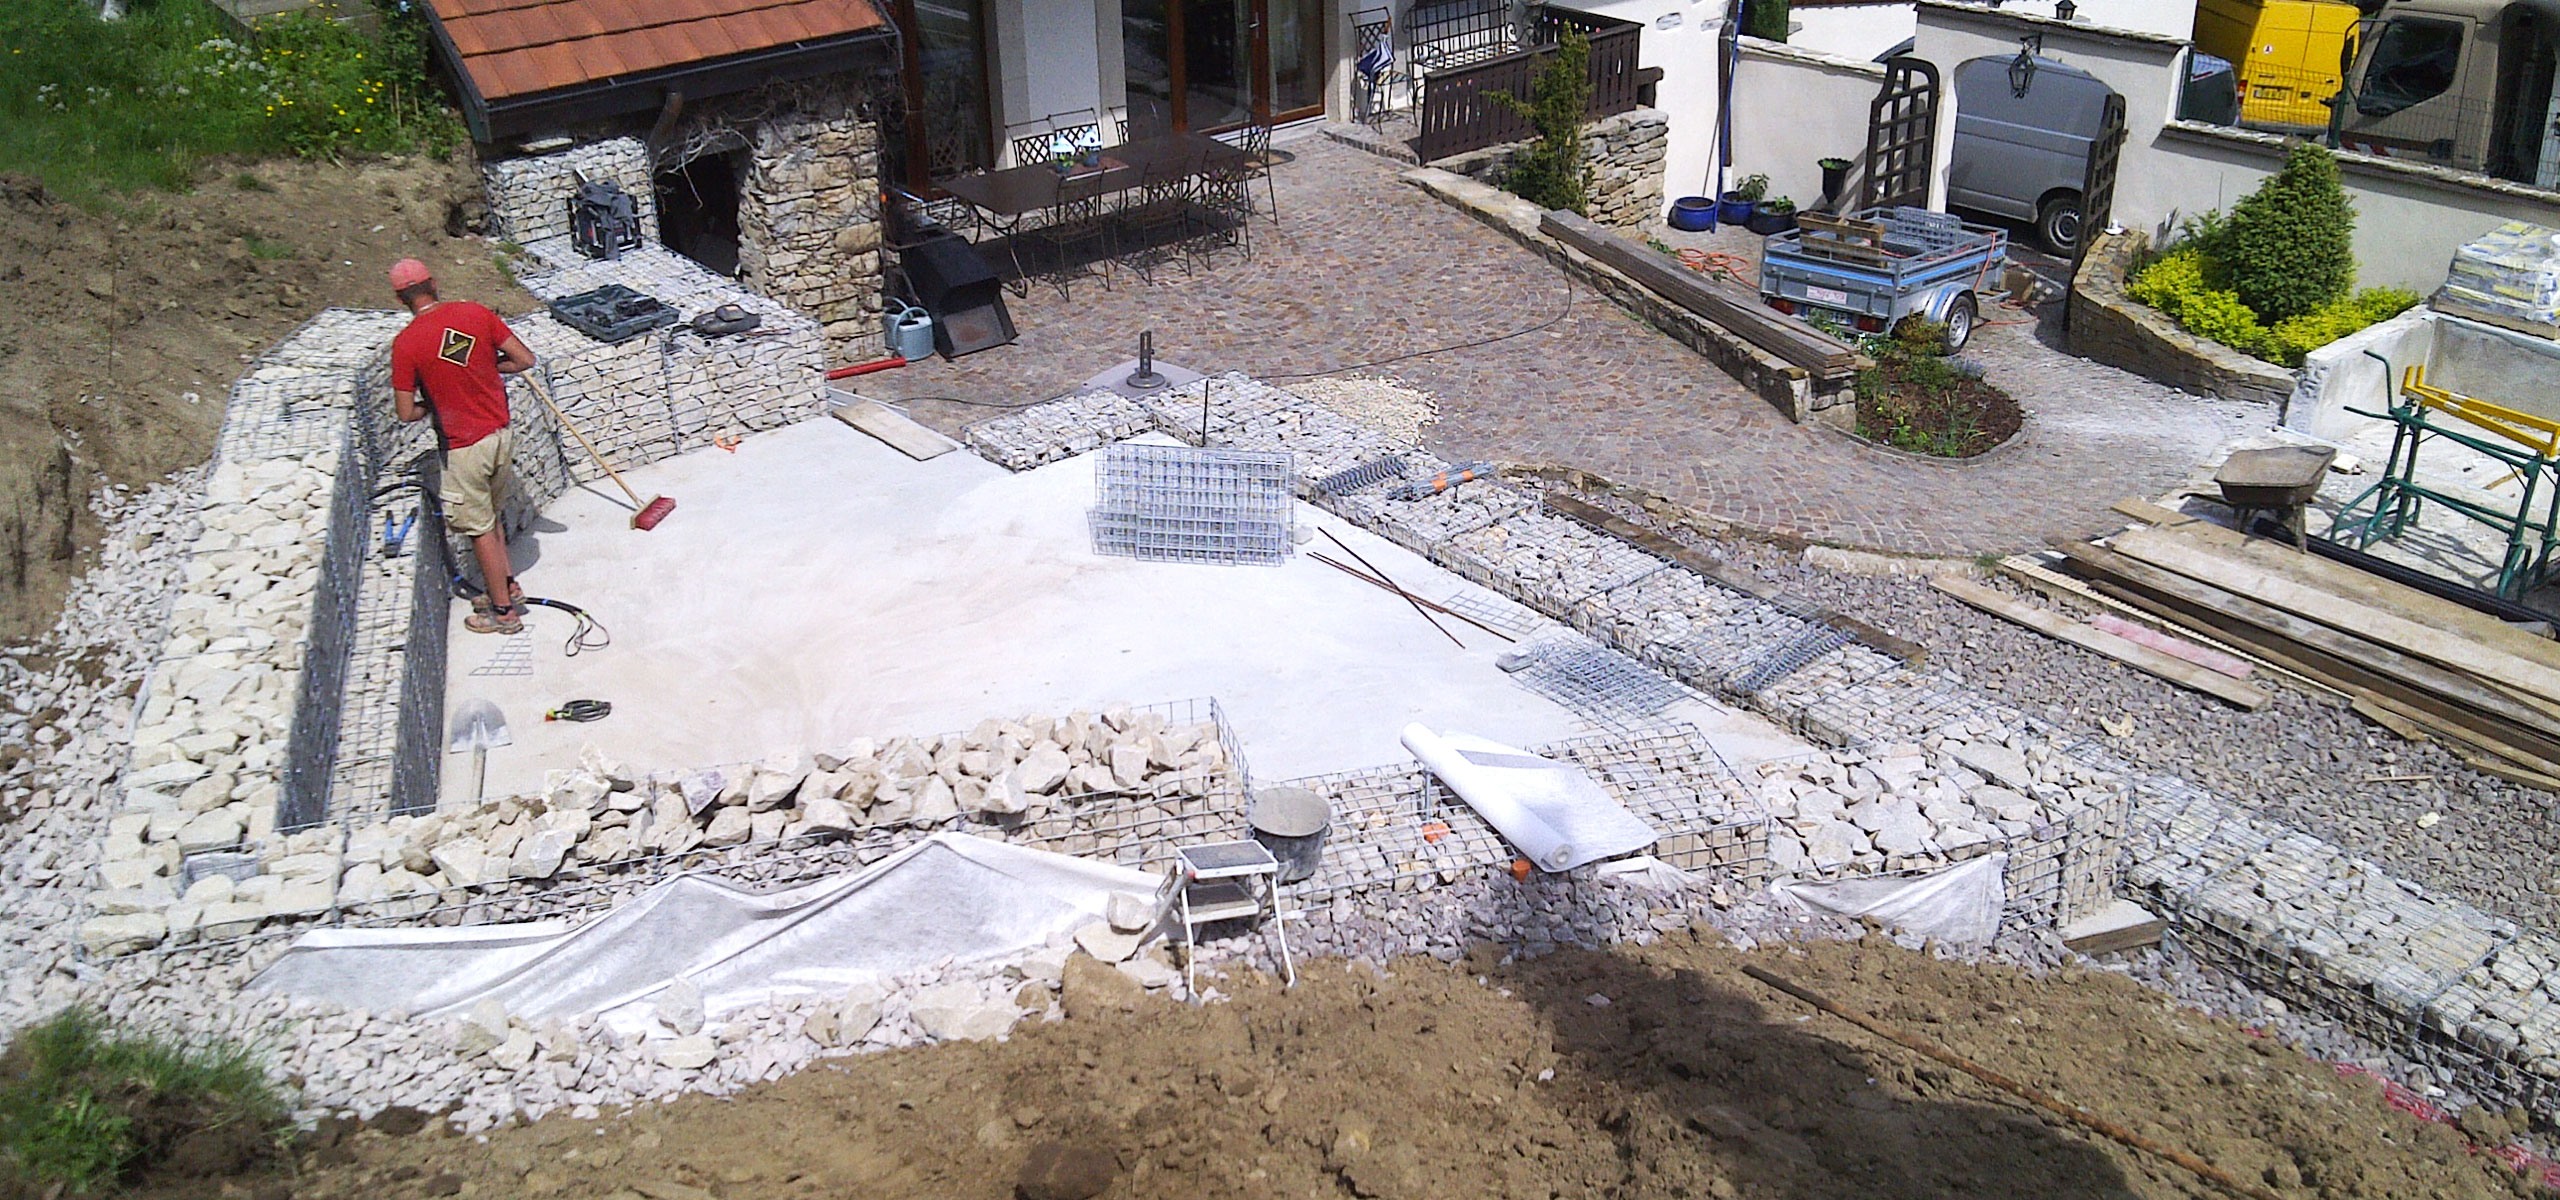 Am nagement ext rieur gabion condevaux for Photos amenagement exterieur